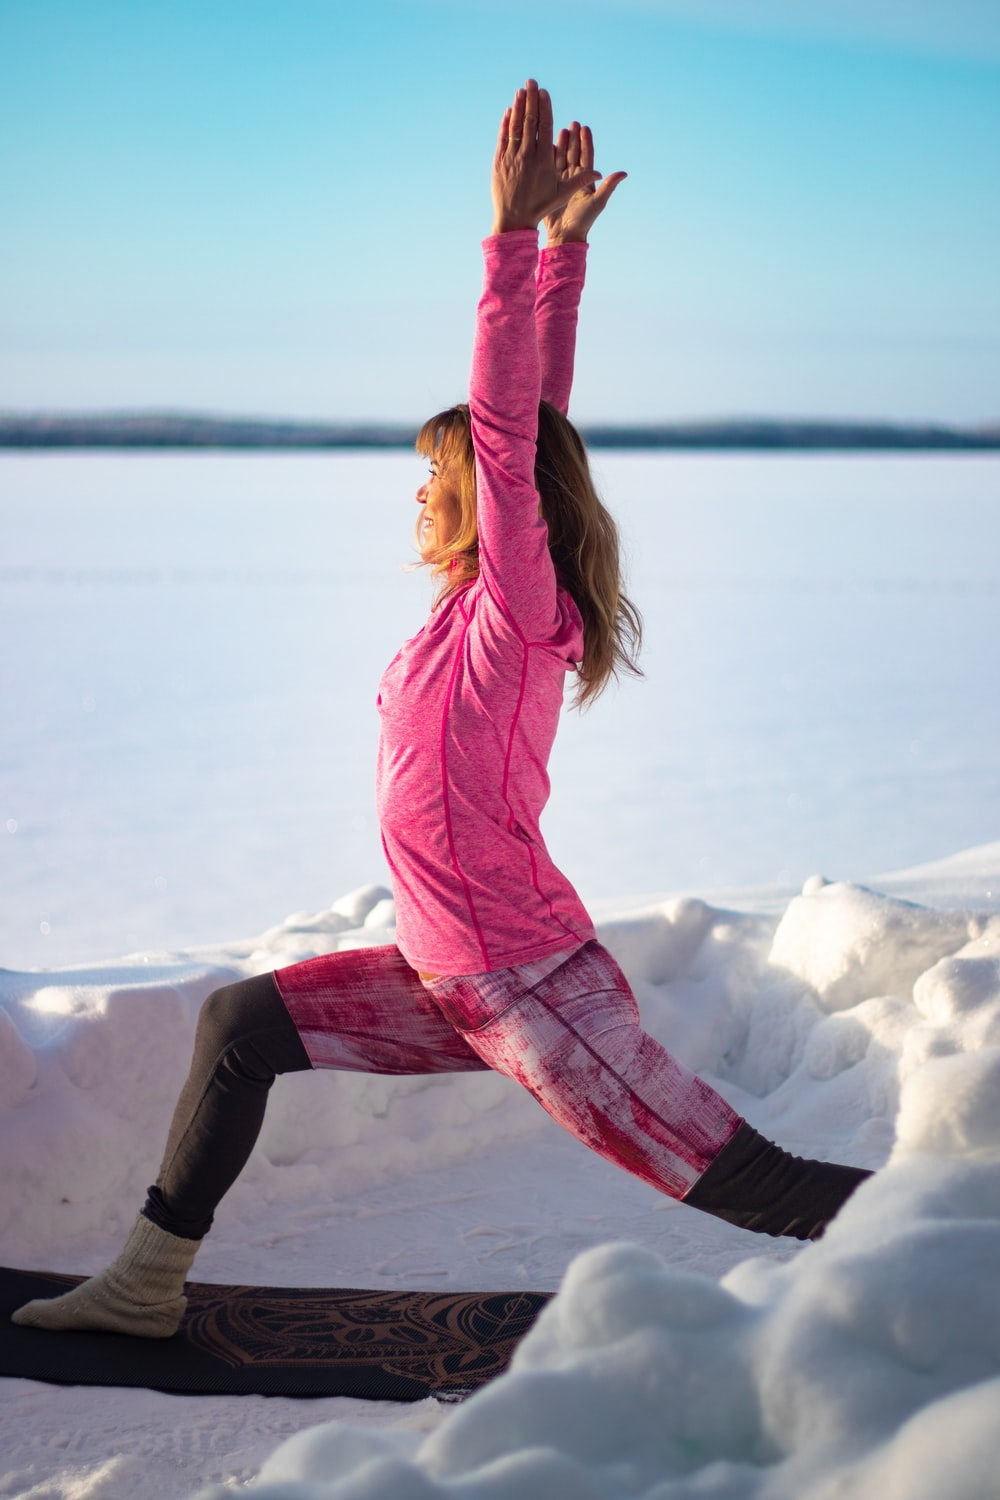 woman in pink jacket and black pants jumping on snow covered ground during daytime